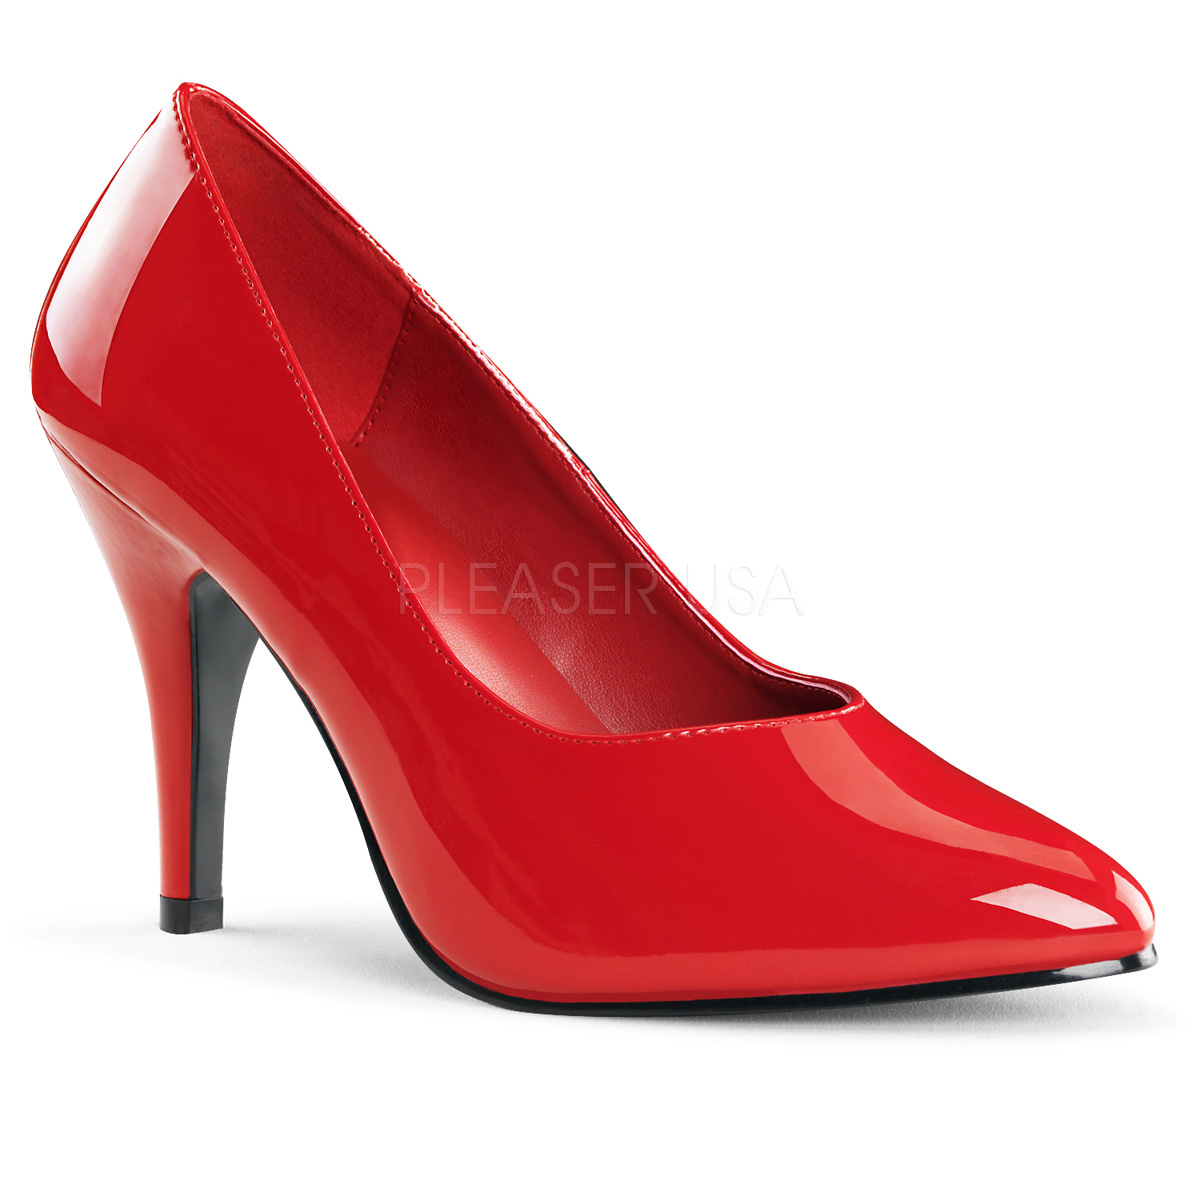 4 Inch Stiletto Heel Pump - Click Image to Close